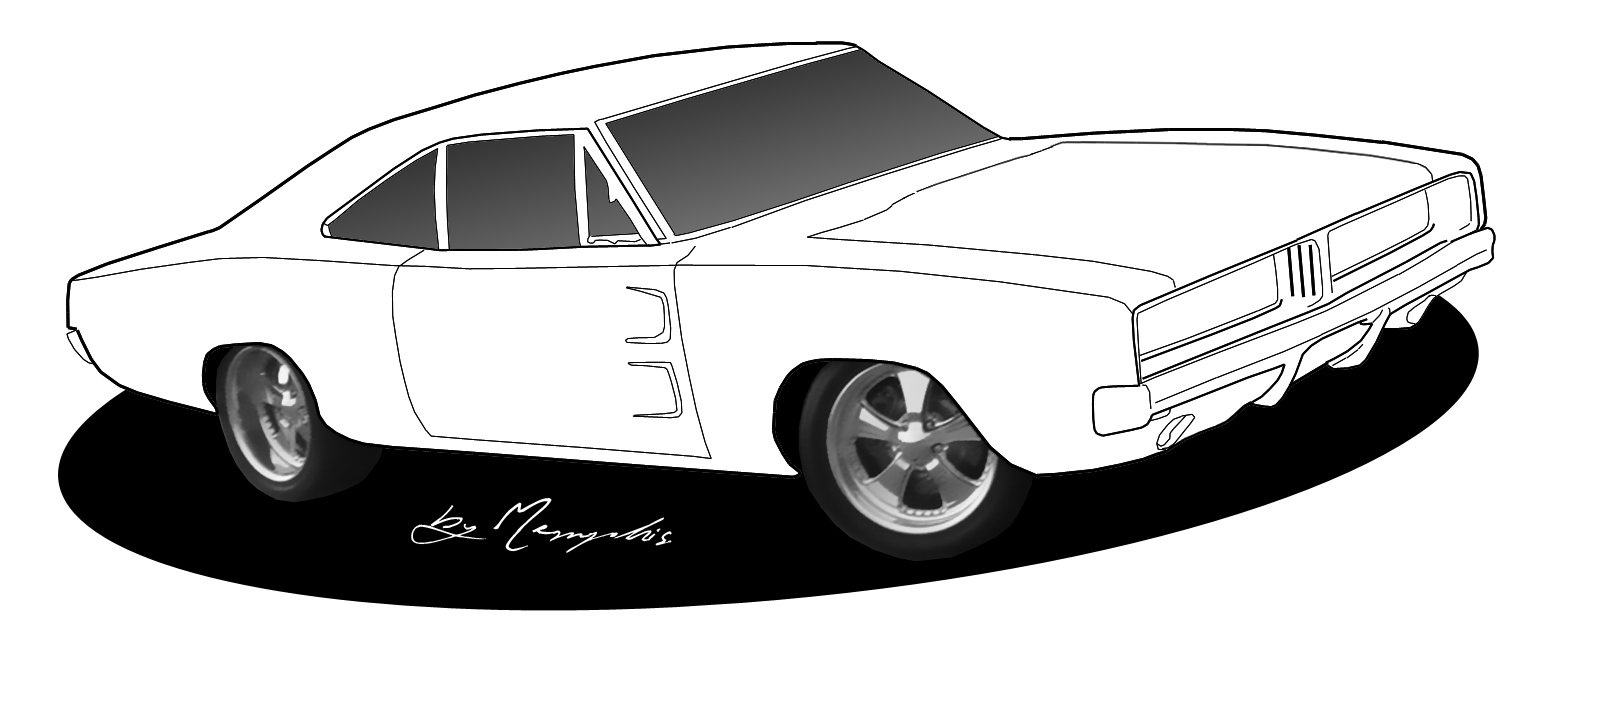 picture of a car to color police car coloring pages to download and print for free of picture car to a color